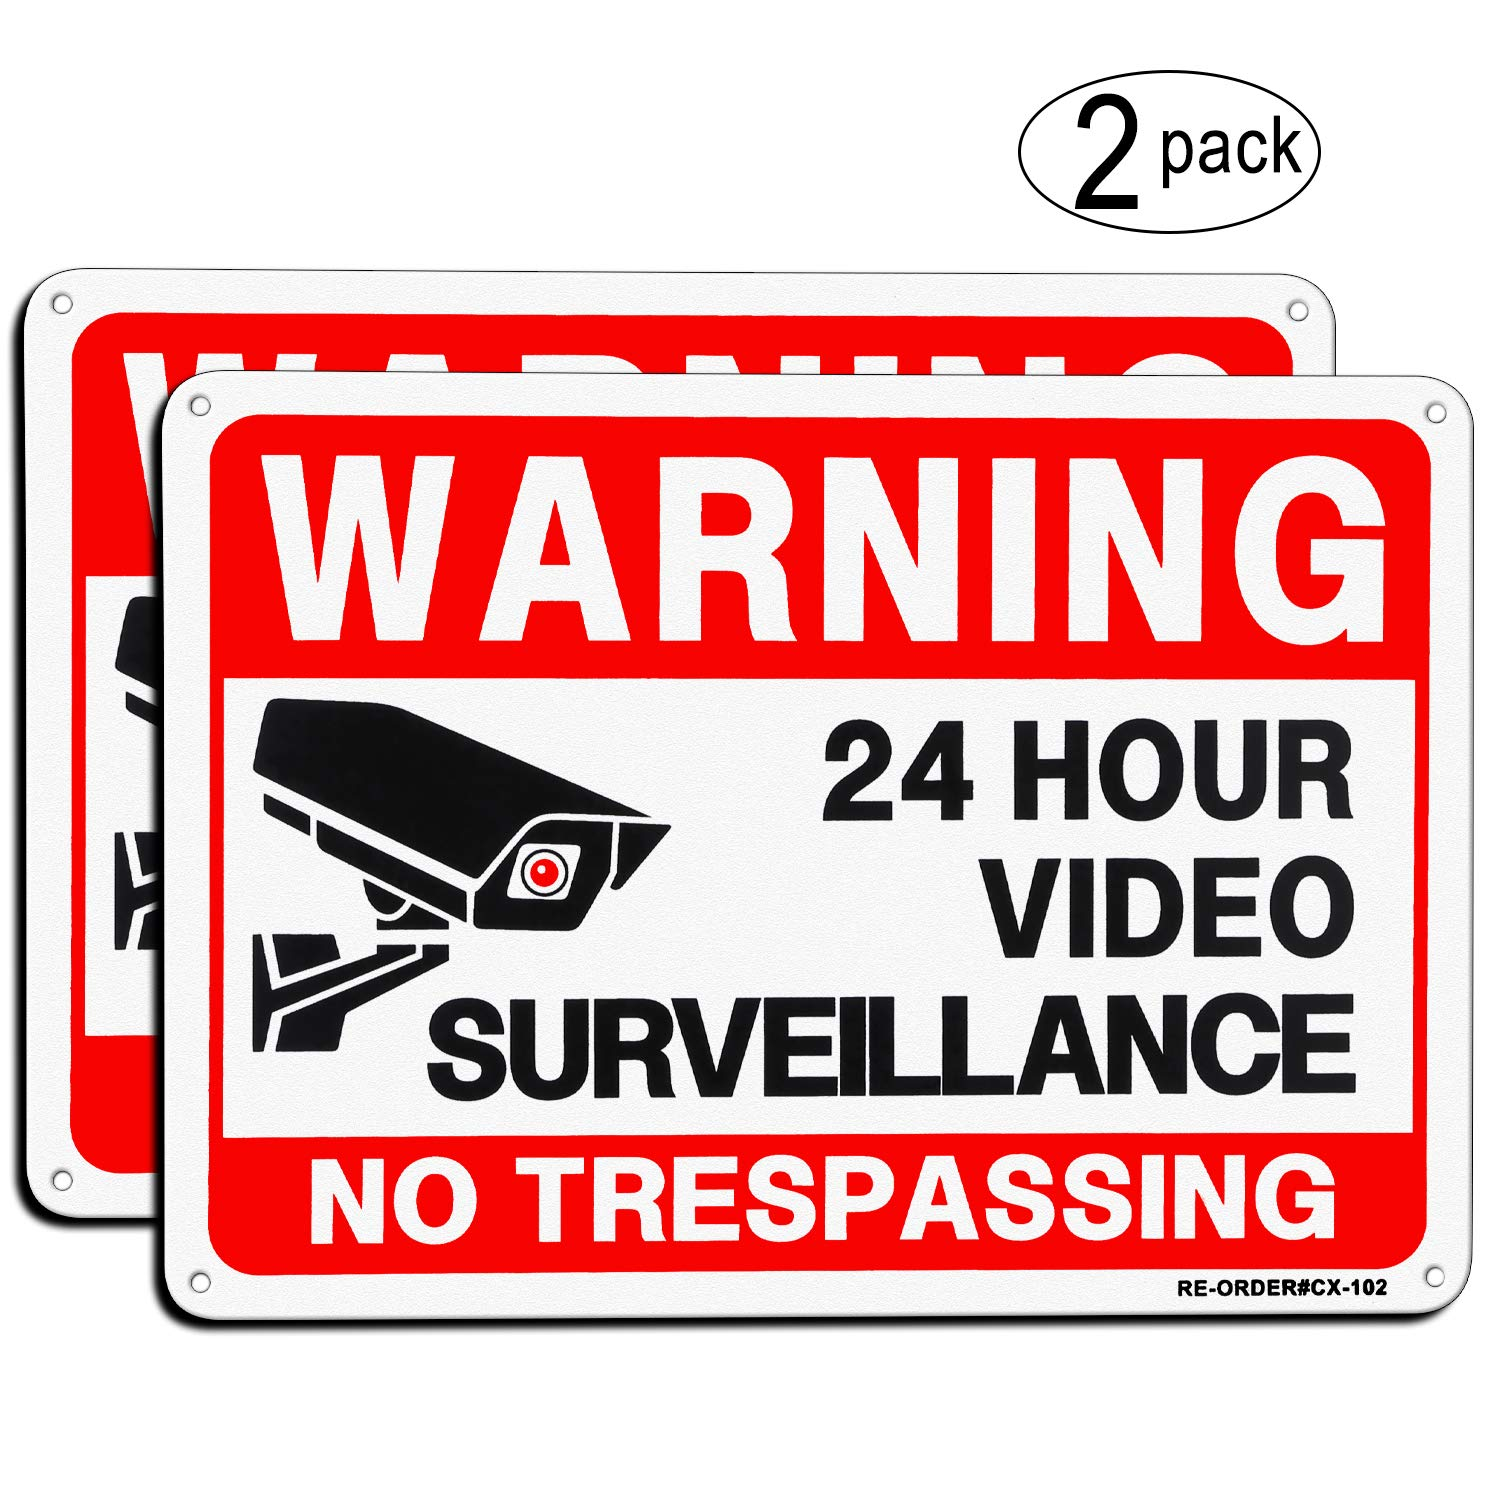 "Video Surveillance Sign 2 Pack, MUXYH No Trespassing Sign, UV Protected & Waterproof, 10""x 7"" Aluminum Metal Reflective Warning Signs Indoor Or Outdoor Use for Home Business CCTV Security Camera"